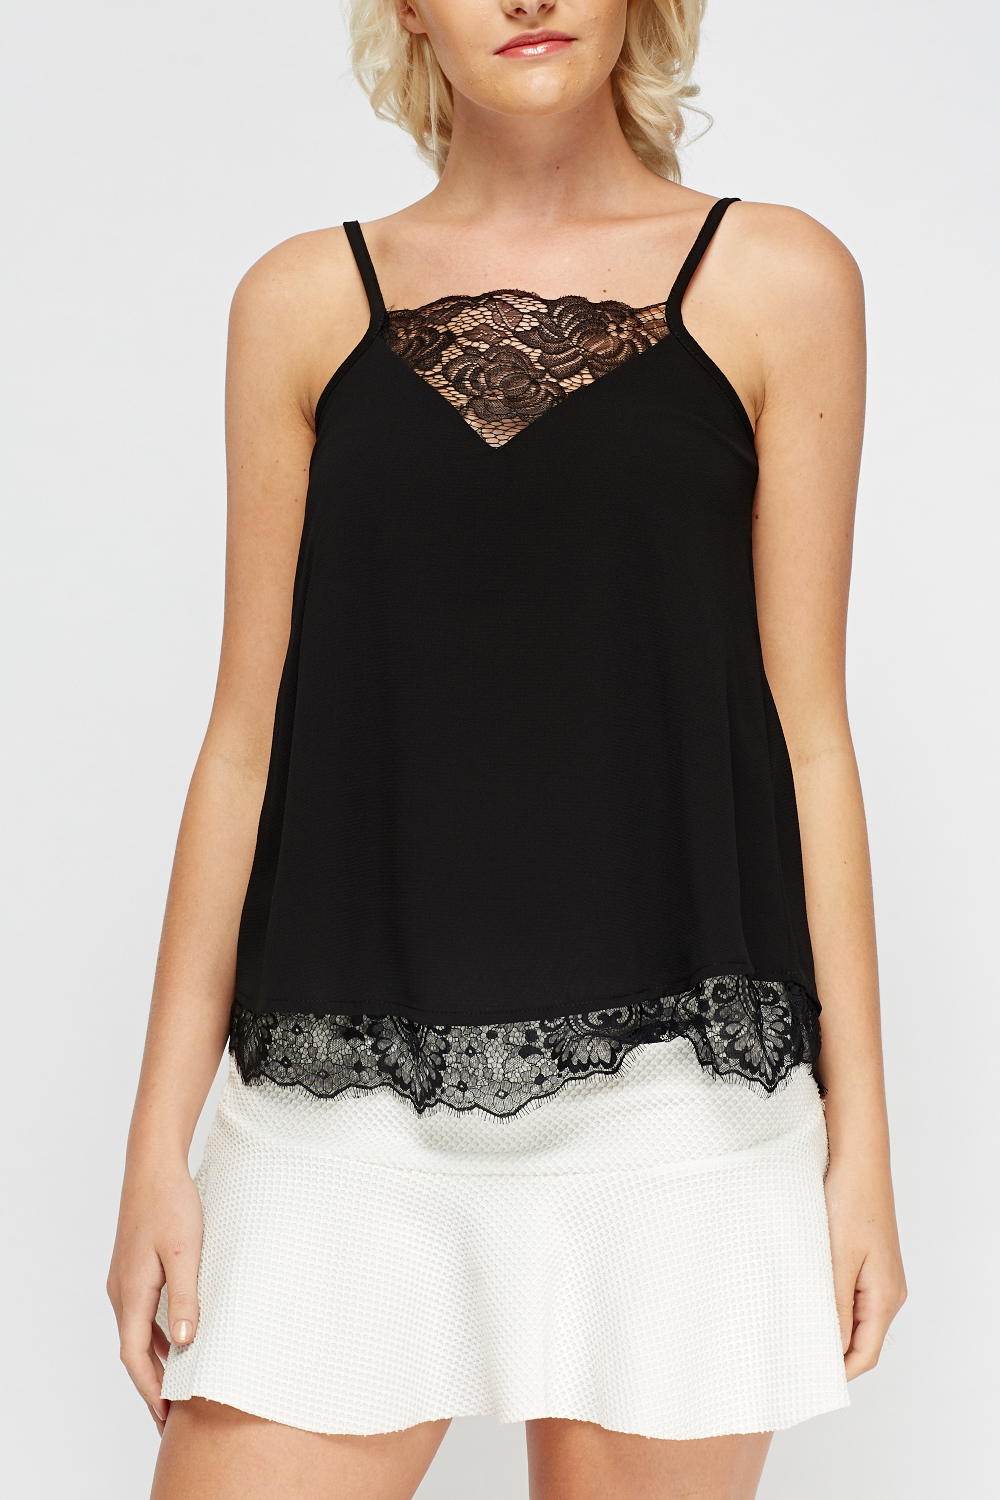 Camisole women 18 2017 for tops lace ebay stores